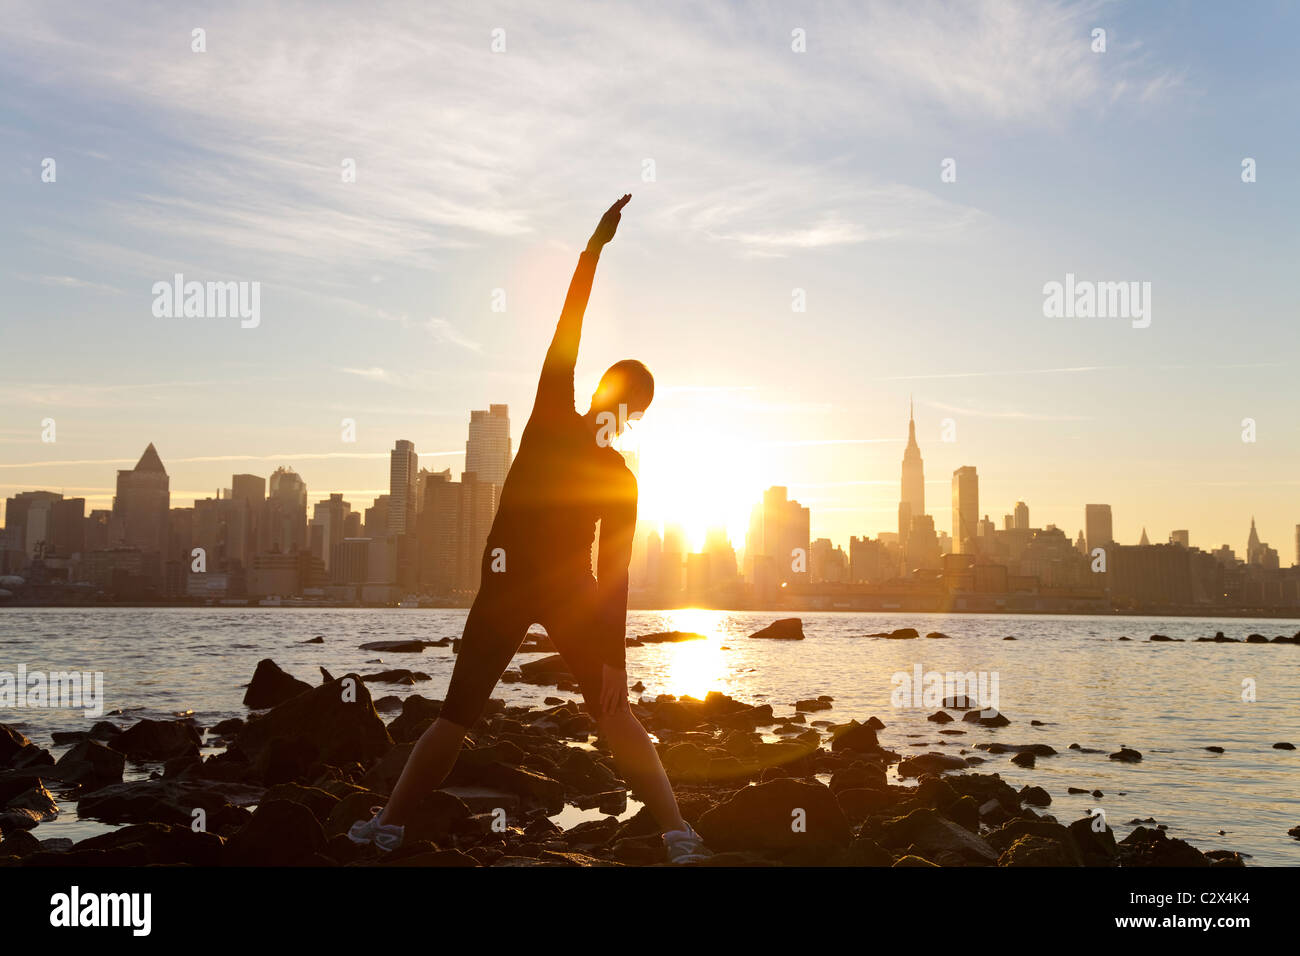 Une femme runner stretching dans une position de yoga en face de Manhattan, New York City, USA, à l'aube au lever Banque D'Images